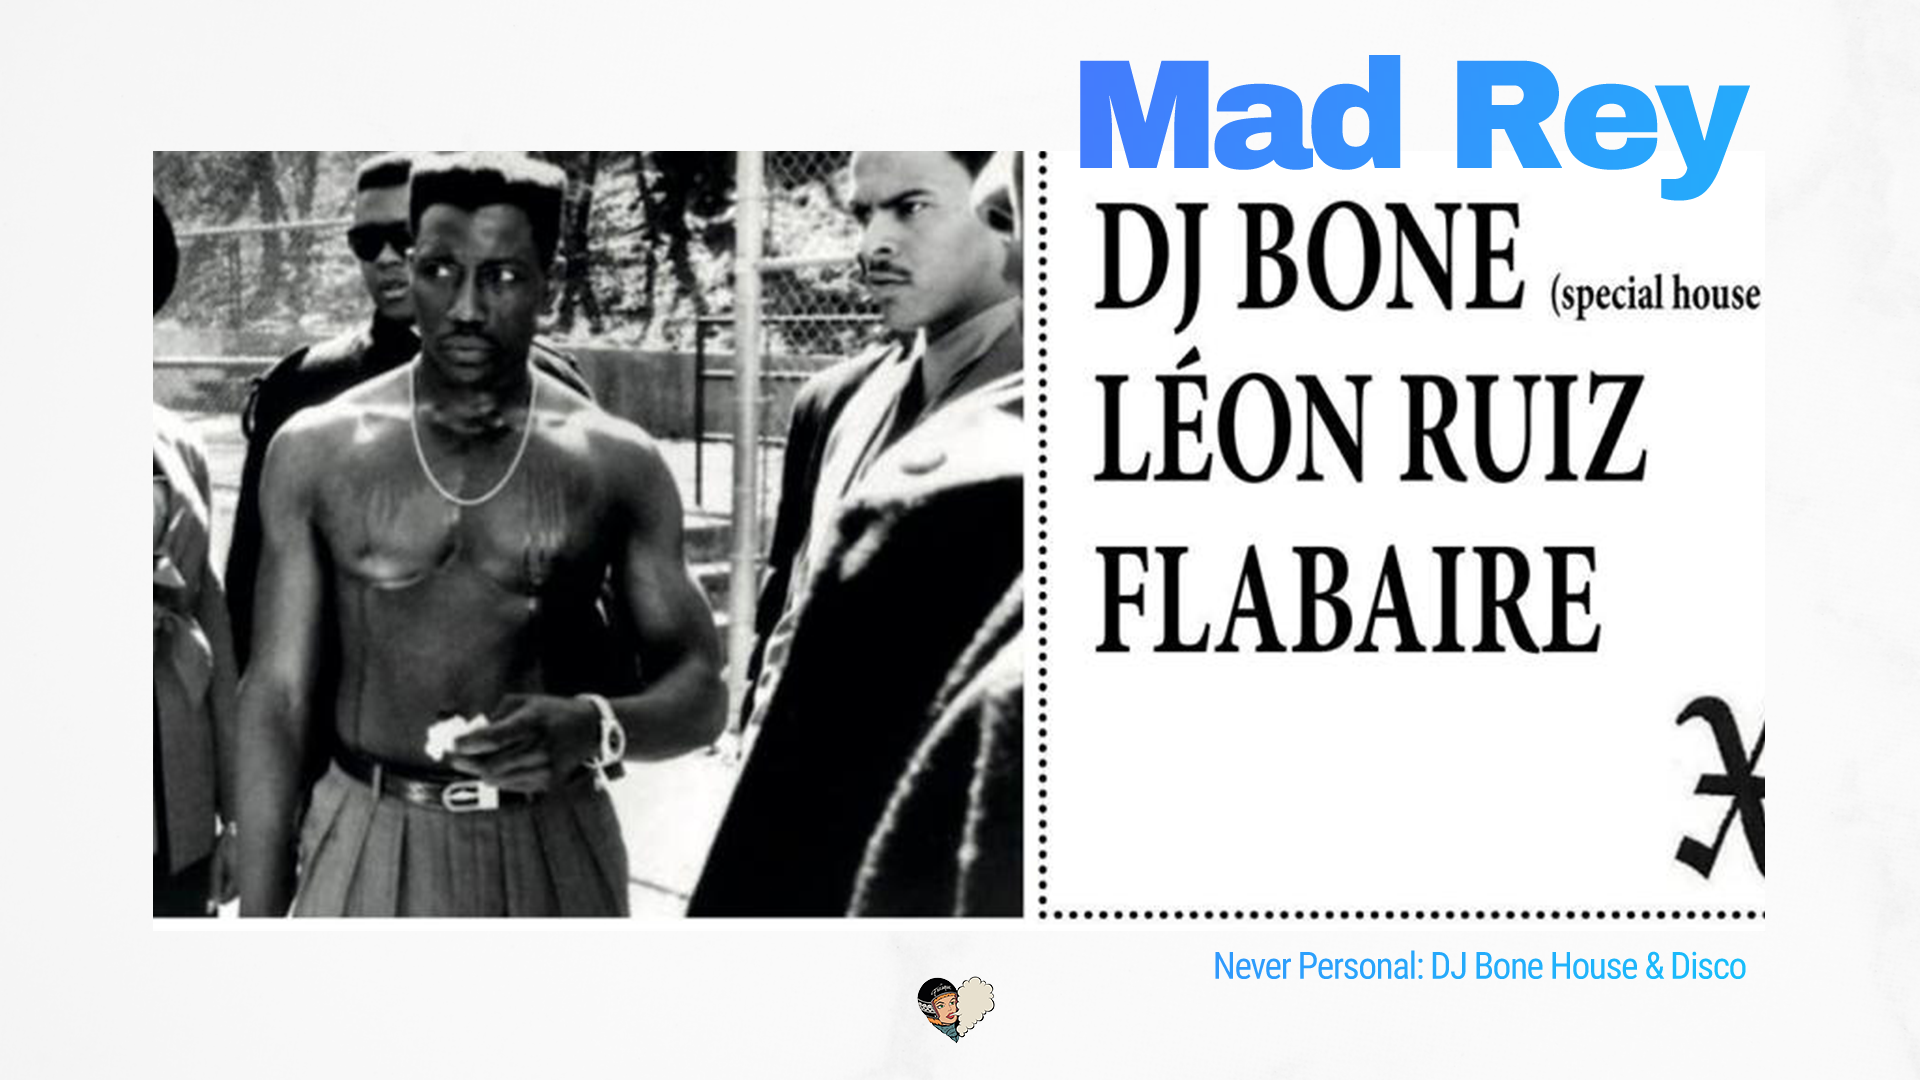 Never Personal: DJ Bone House & Disco Djset, Mad Rey